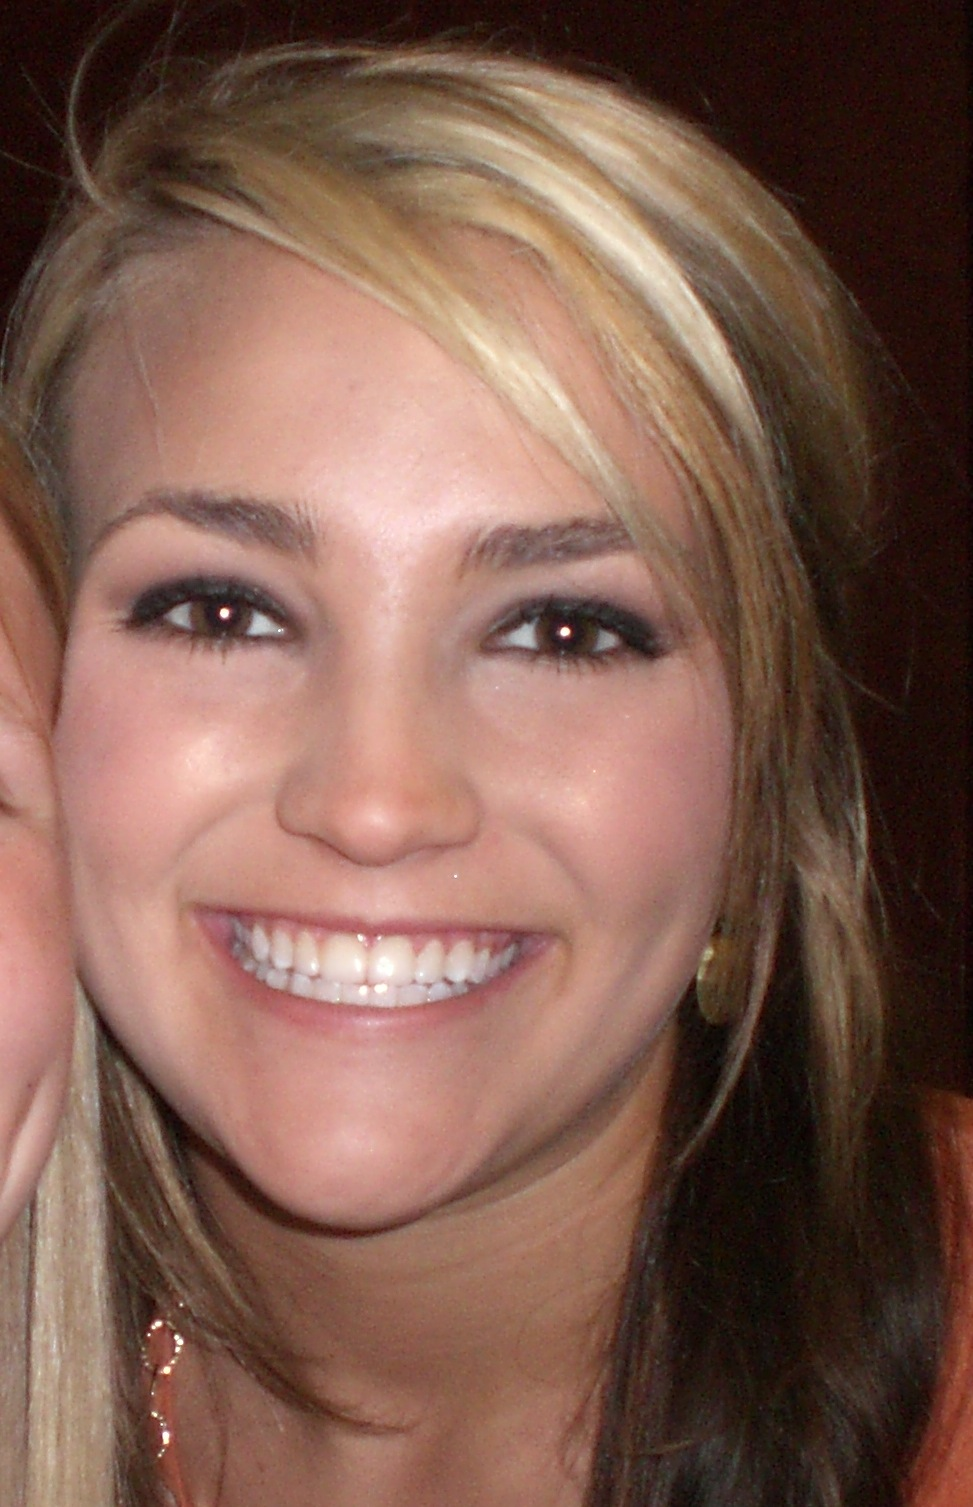 The 29-year old daughter of father Jamie Spears and mother Lynne Spears Jamie Lynn Spears in 2020 photo. Jamie Lynn Spears earned a million dollar salary - leaving the net worth at 5 million in 2020